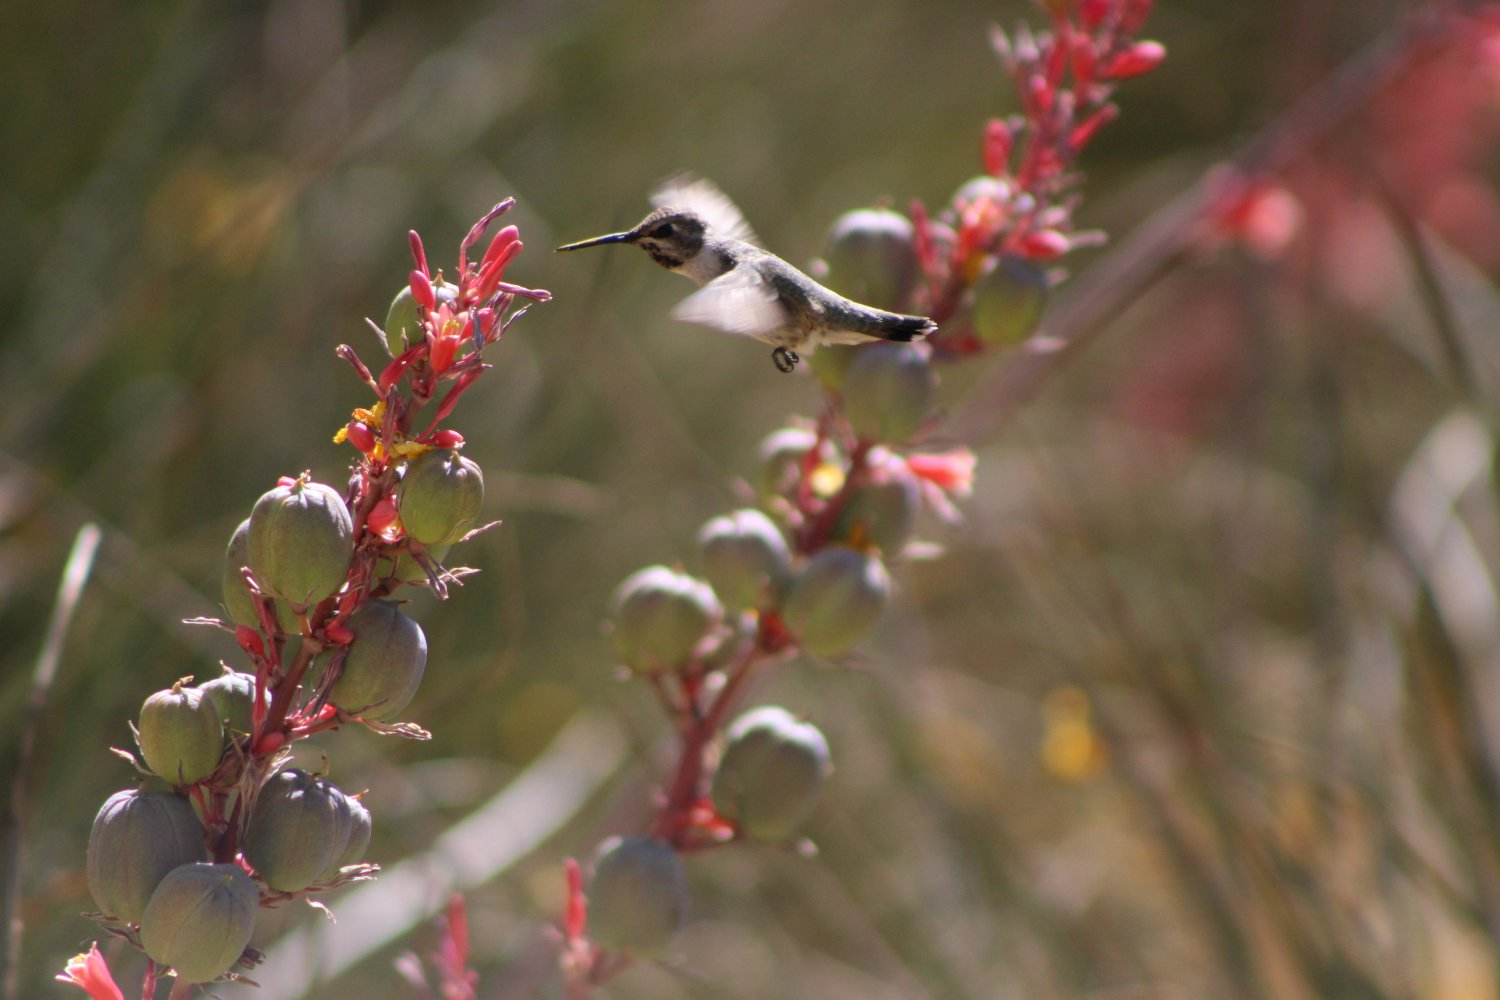 Hummingbird Flying To Red Yucca 2 in 3, Fine Art Photograph for Interior Design